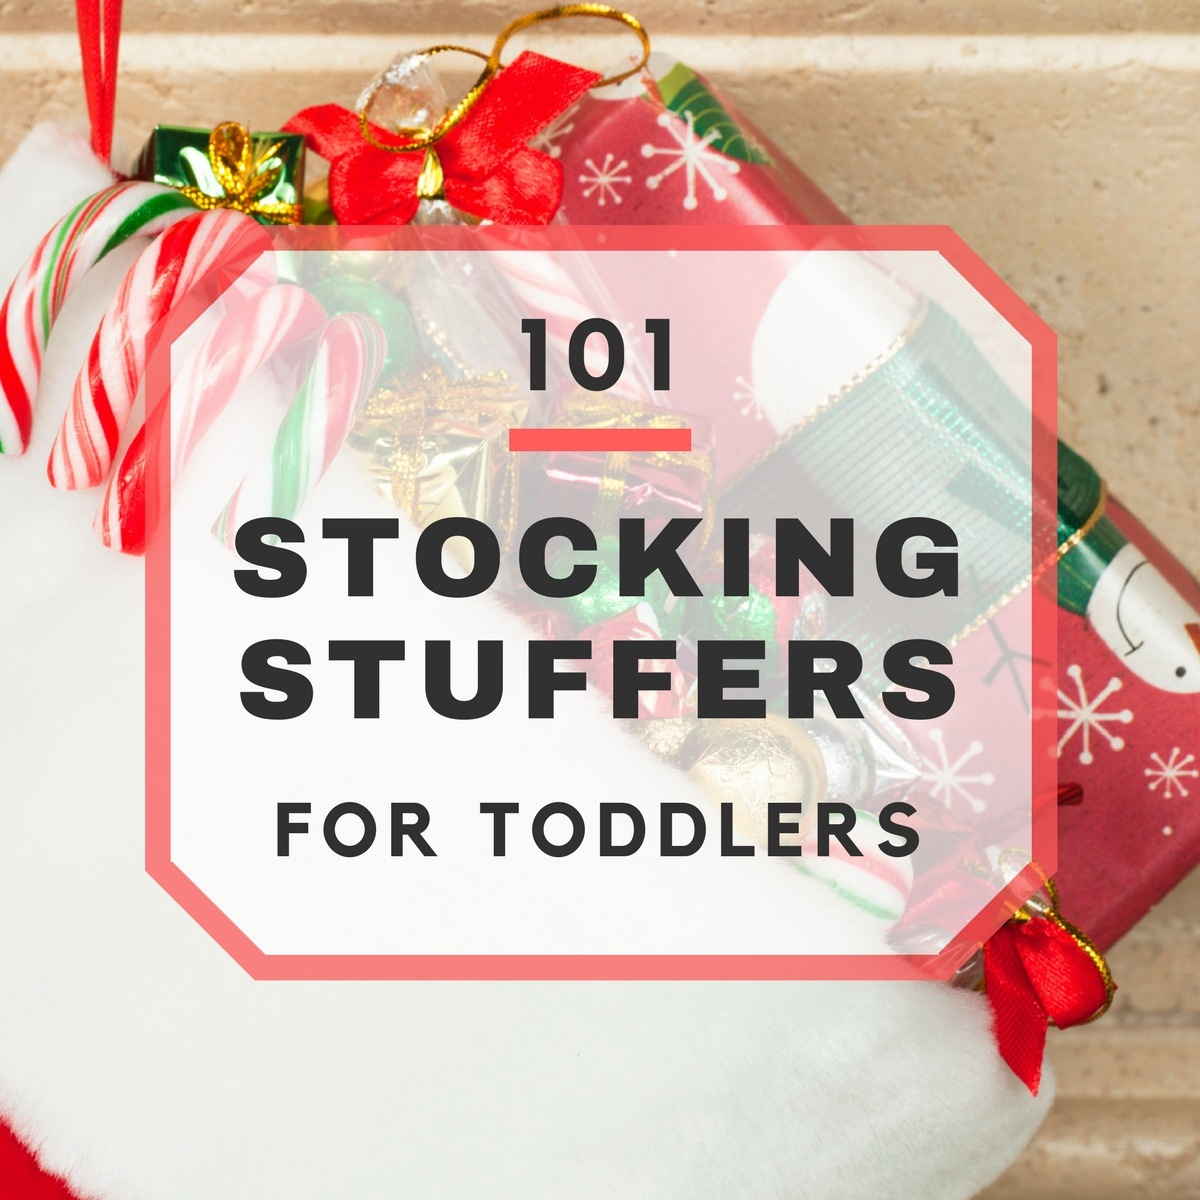 101 Stocking Stuffer Ideas for Toddlers